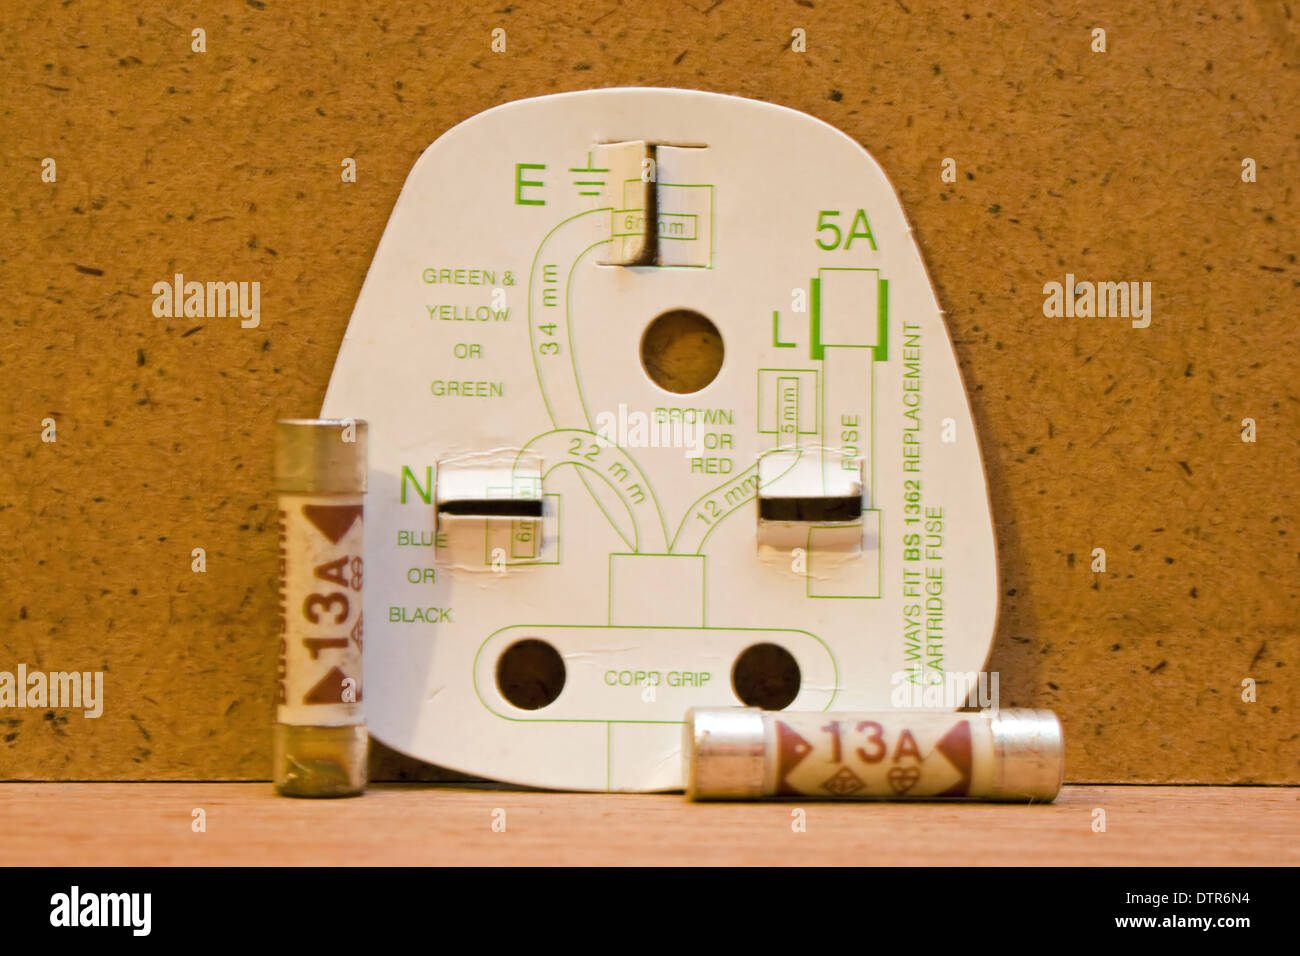 Old Mains Wiring Colours Uk Free Download Wiring Diagrams Pictures